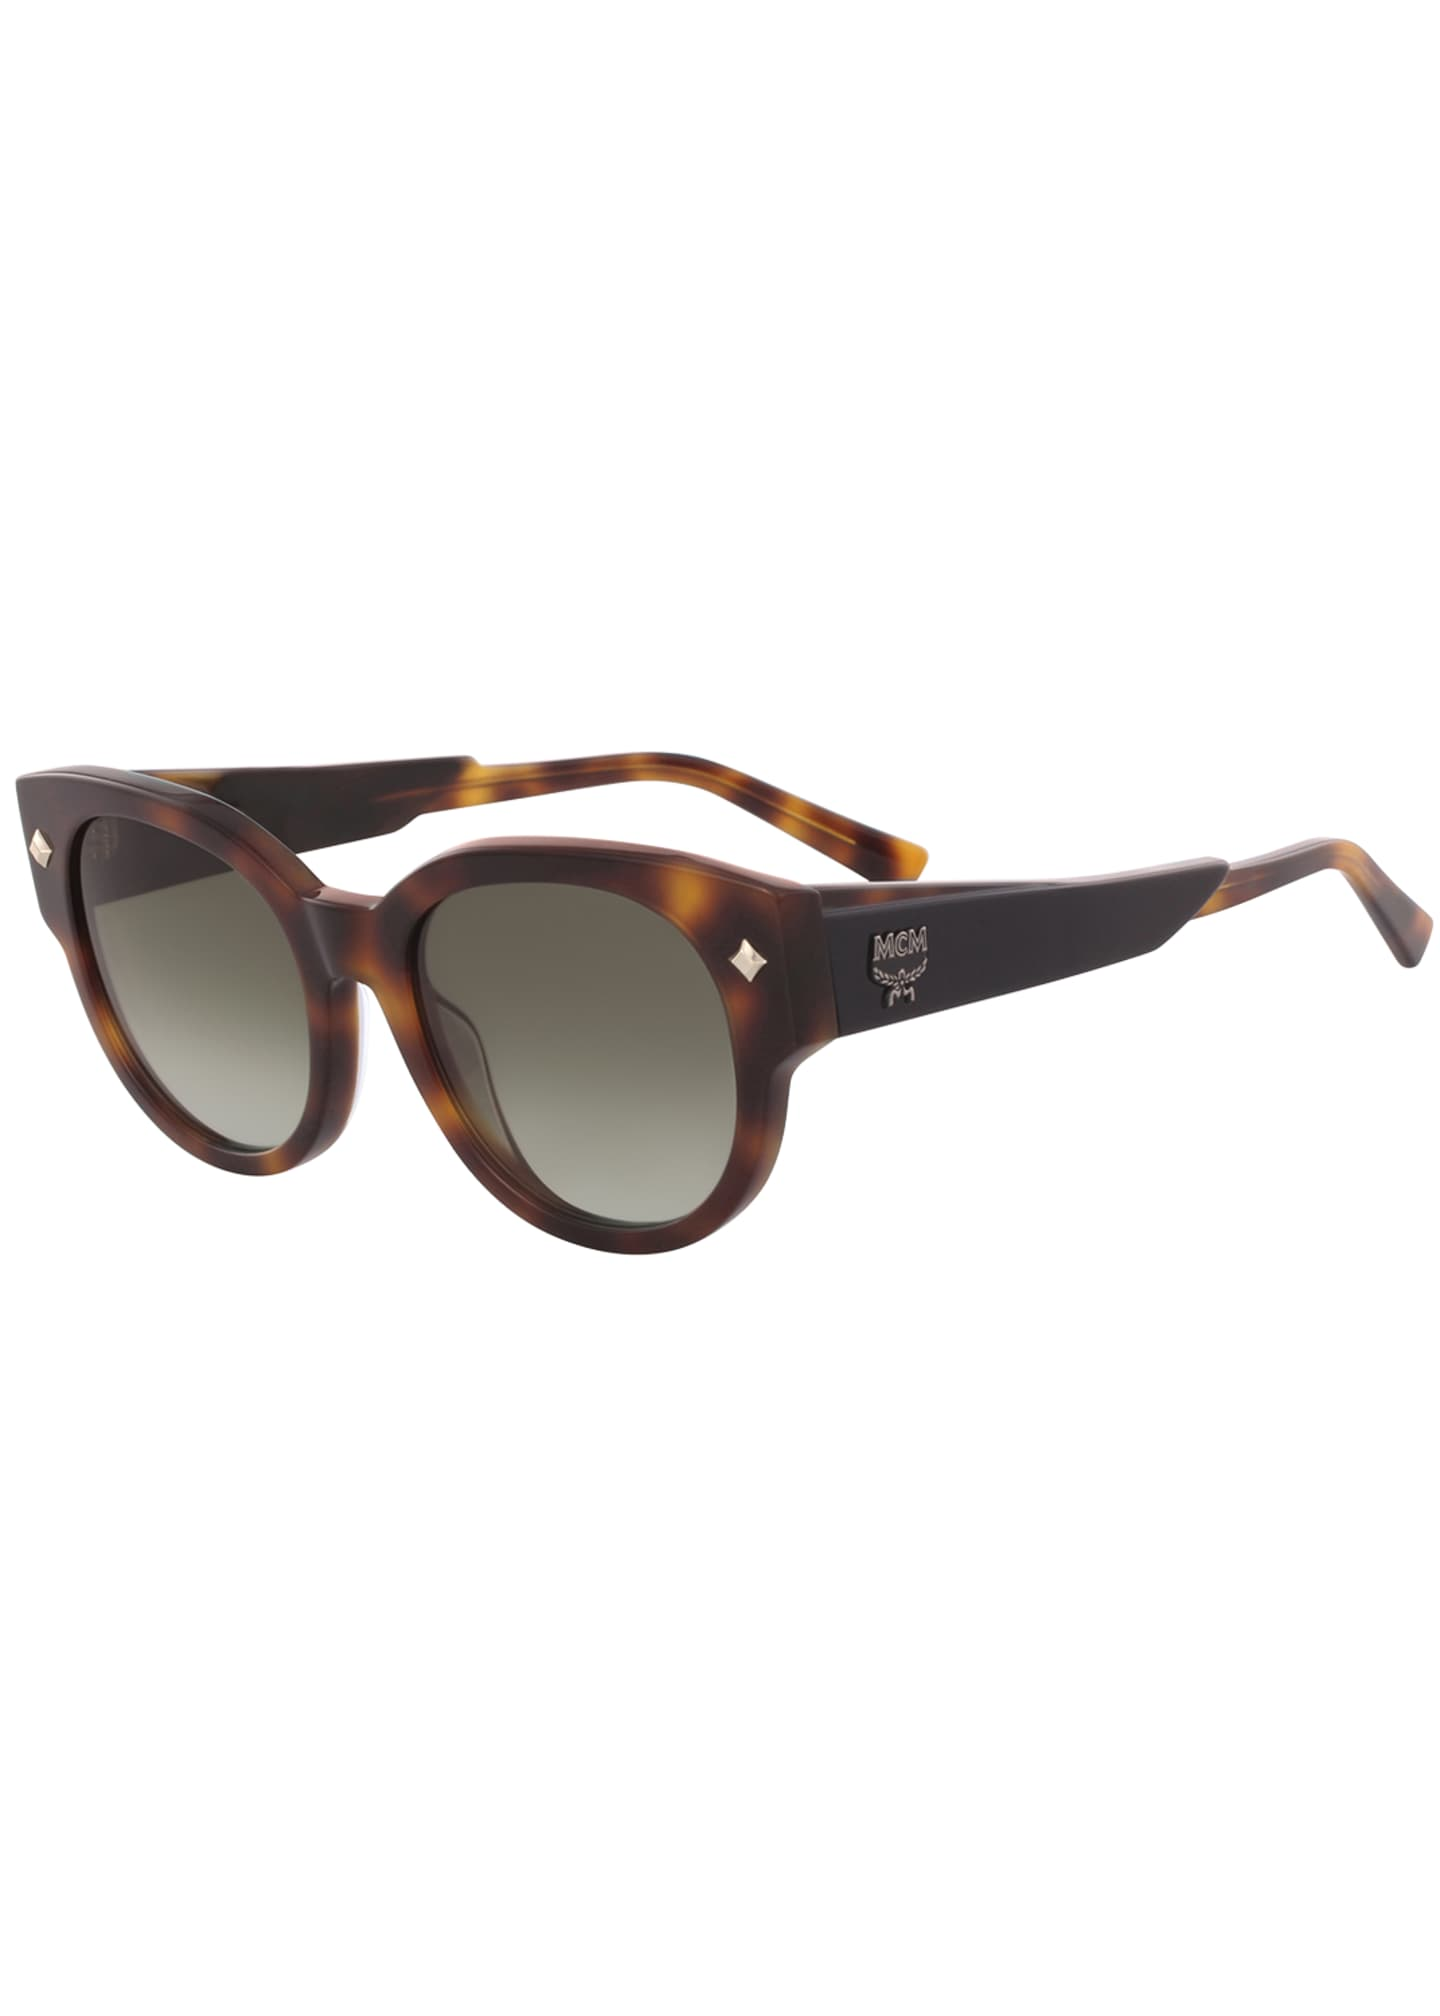 MCM Round Acetate Sunglasses w/ Leather Wrapped Arms